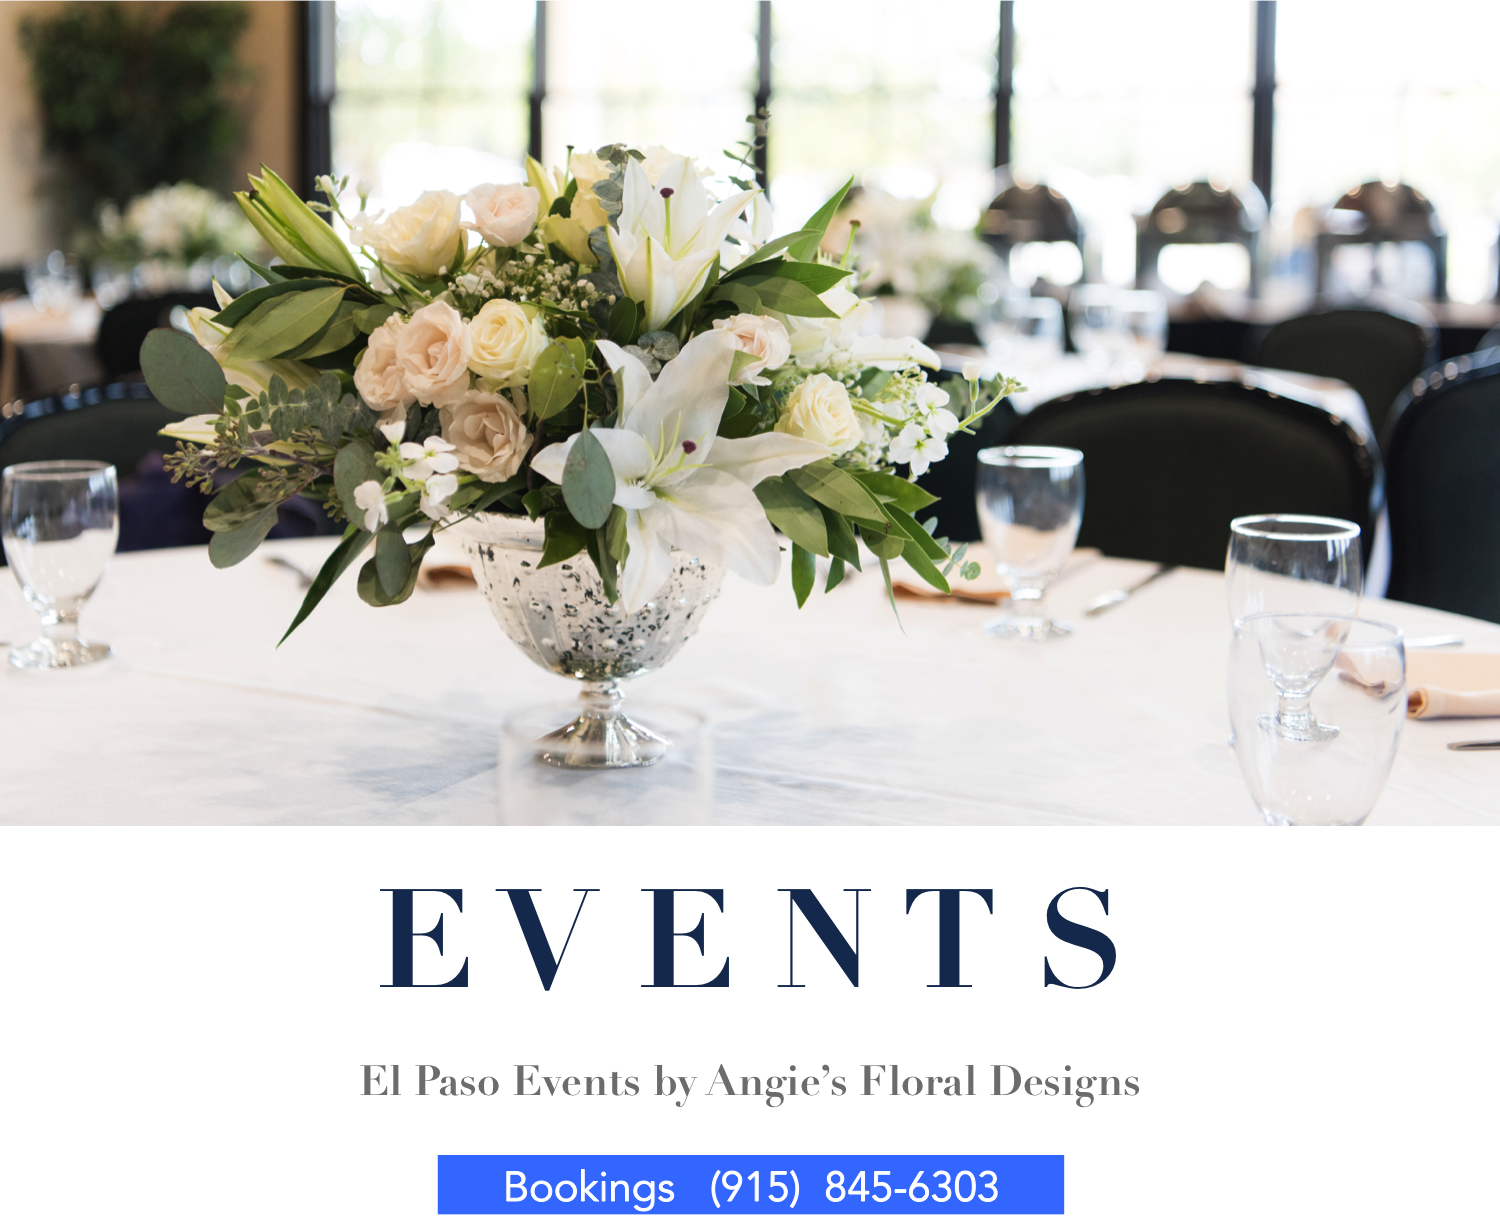 0-angies-floral-d-p-lan-ts-corporate-events-el-paso-events-weddings-cal-las-el-paso-flowershop-send-gifts-79912-handcrafted-gifts-same-day-delivery-roses-flowershop-el-paso-texas-79912-shop-online-flowers-florist-best-florist.png